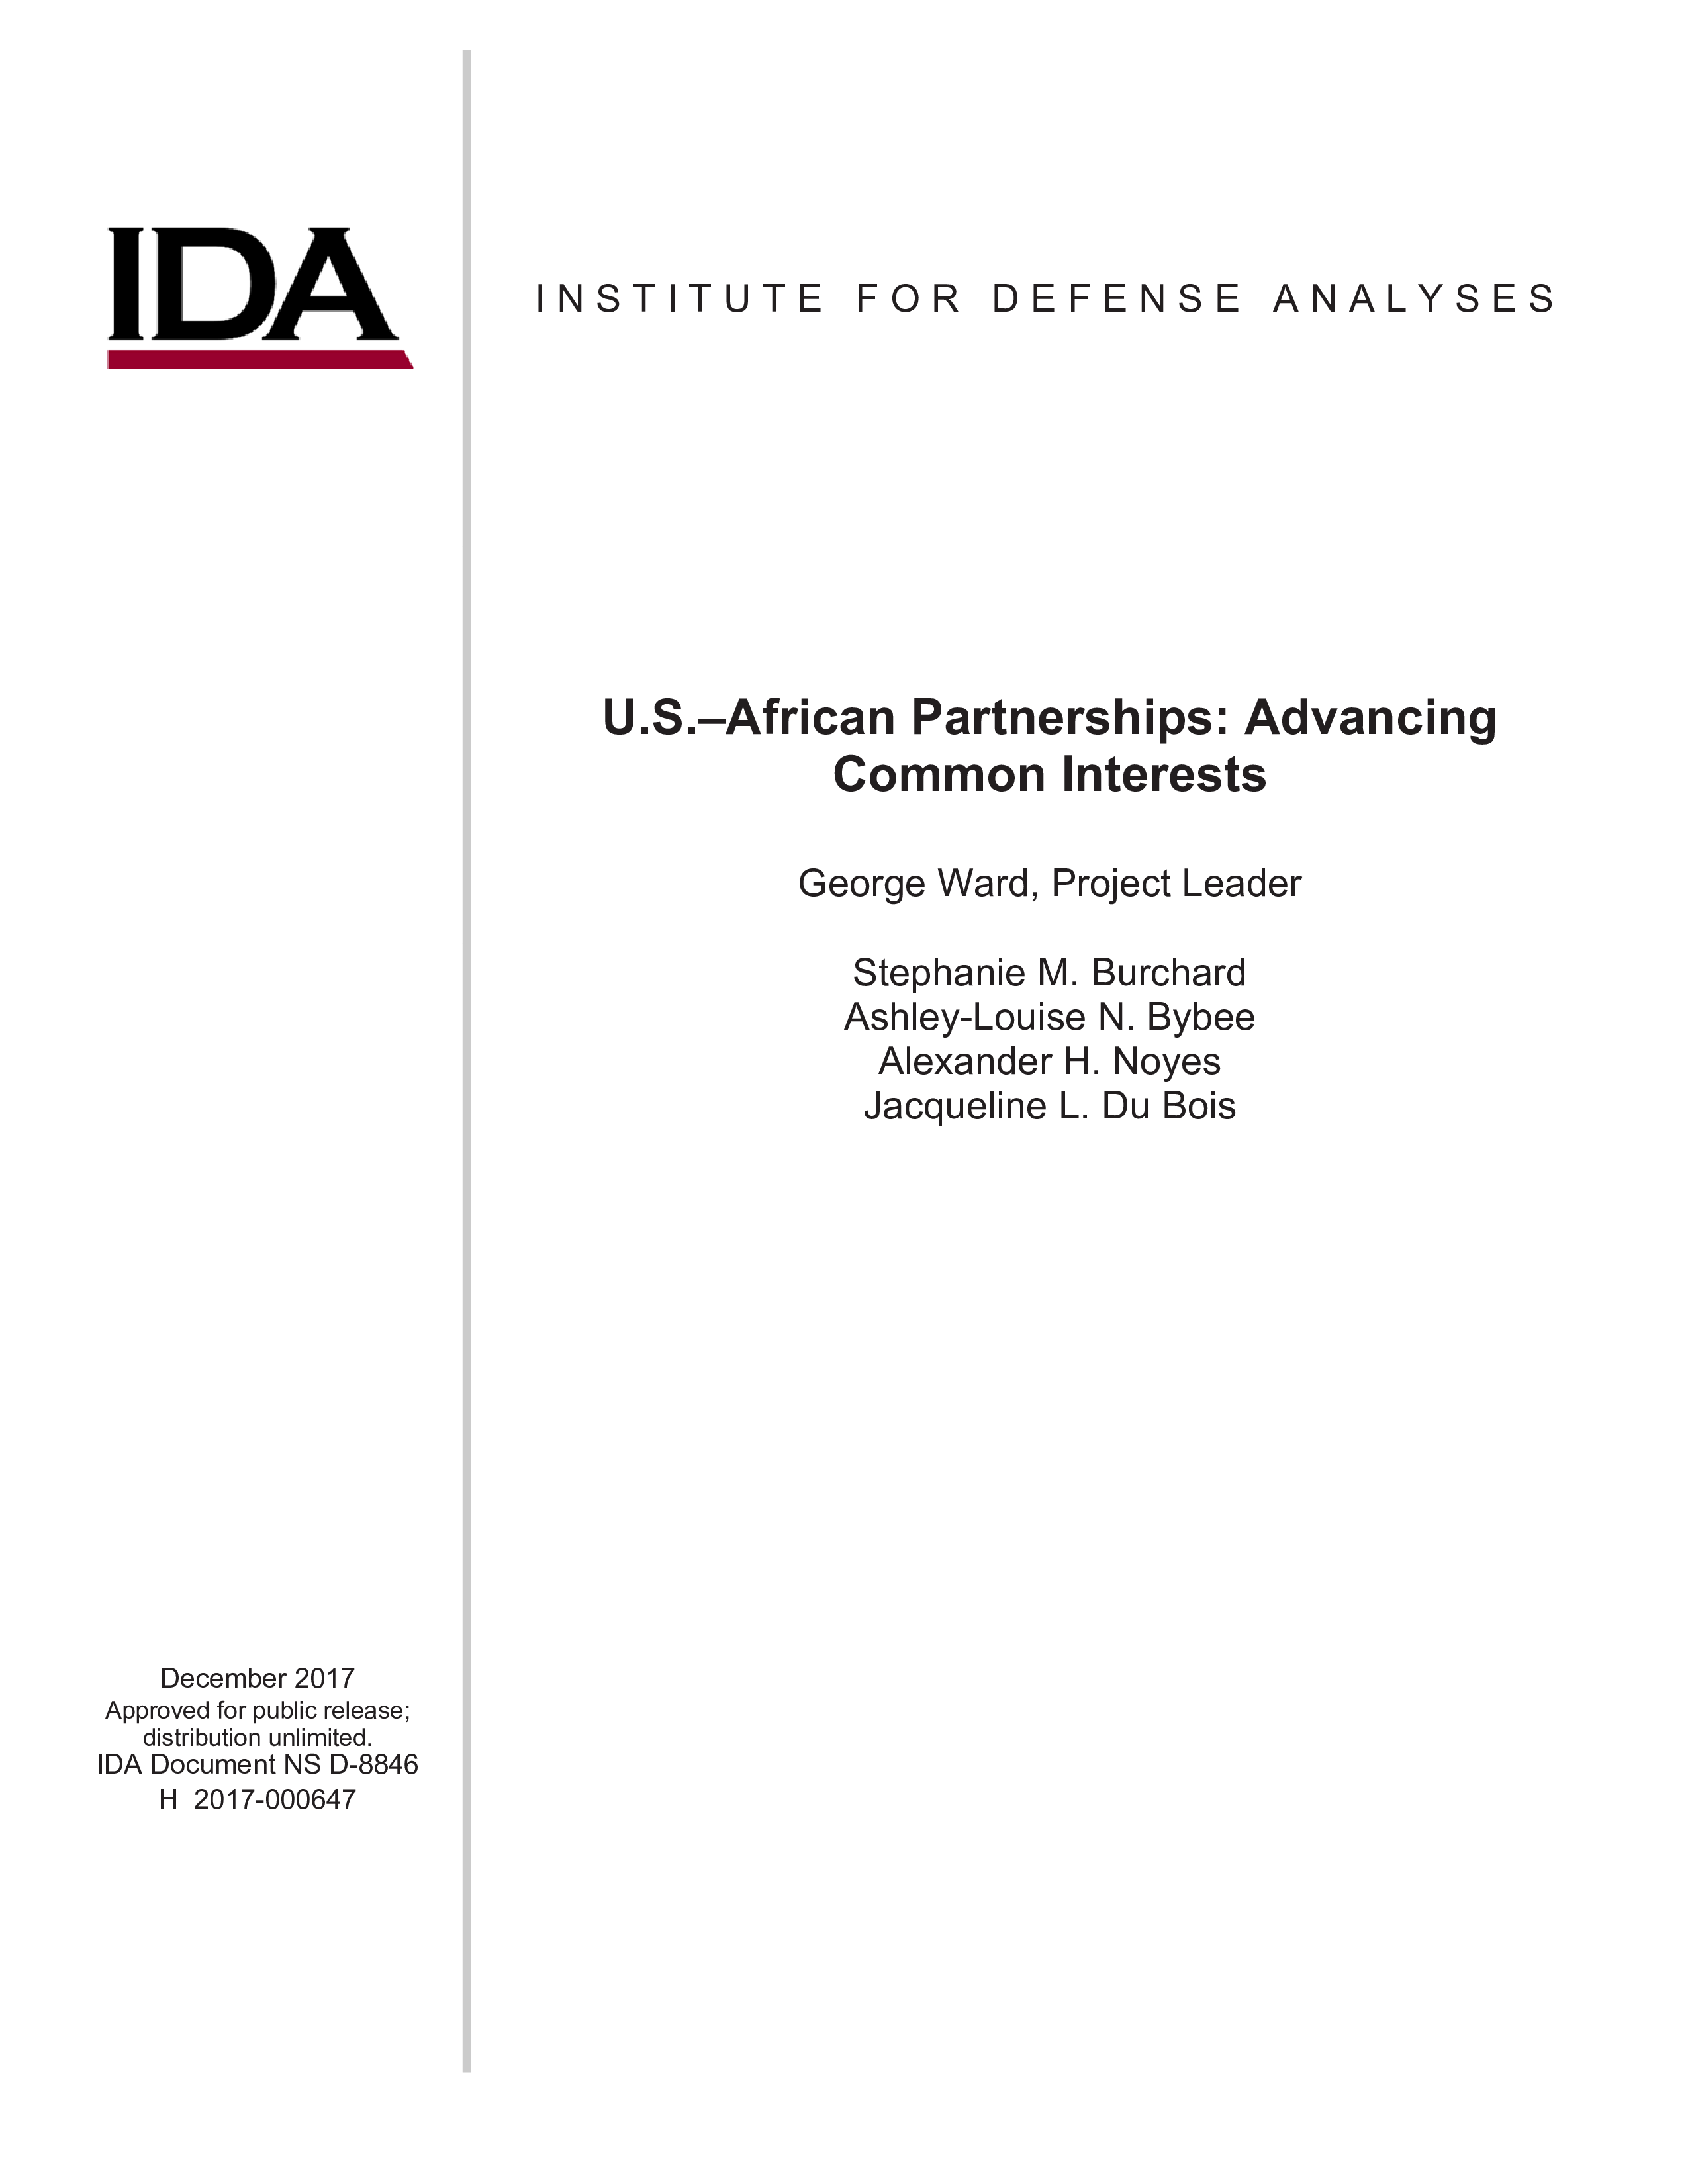 U.S.–African Partnerships: Advancing Common Interests